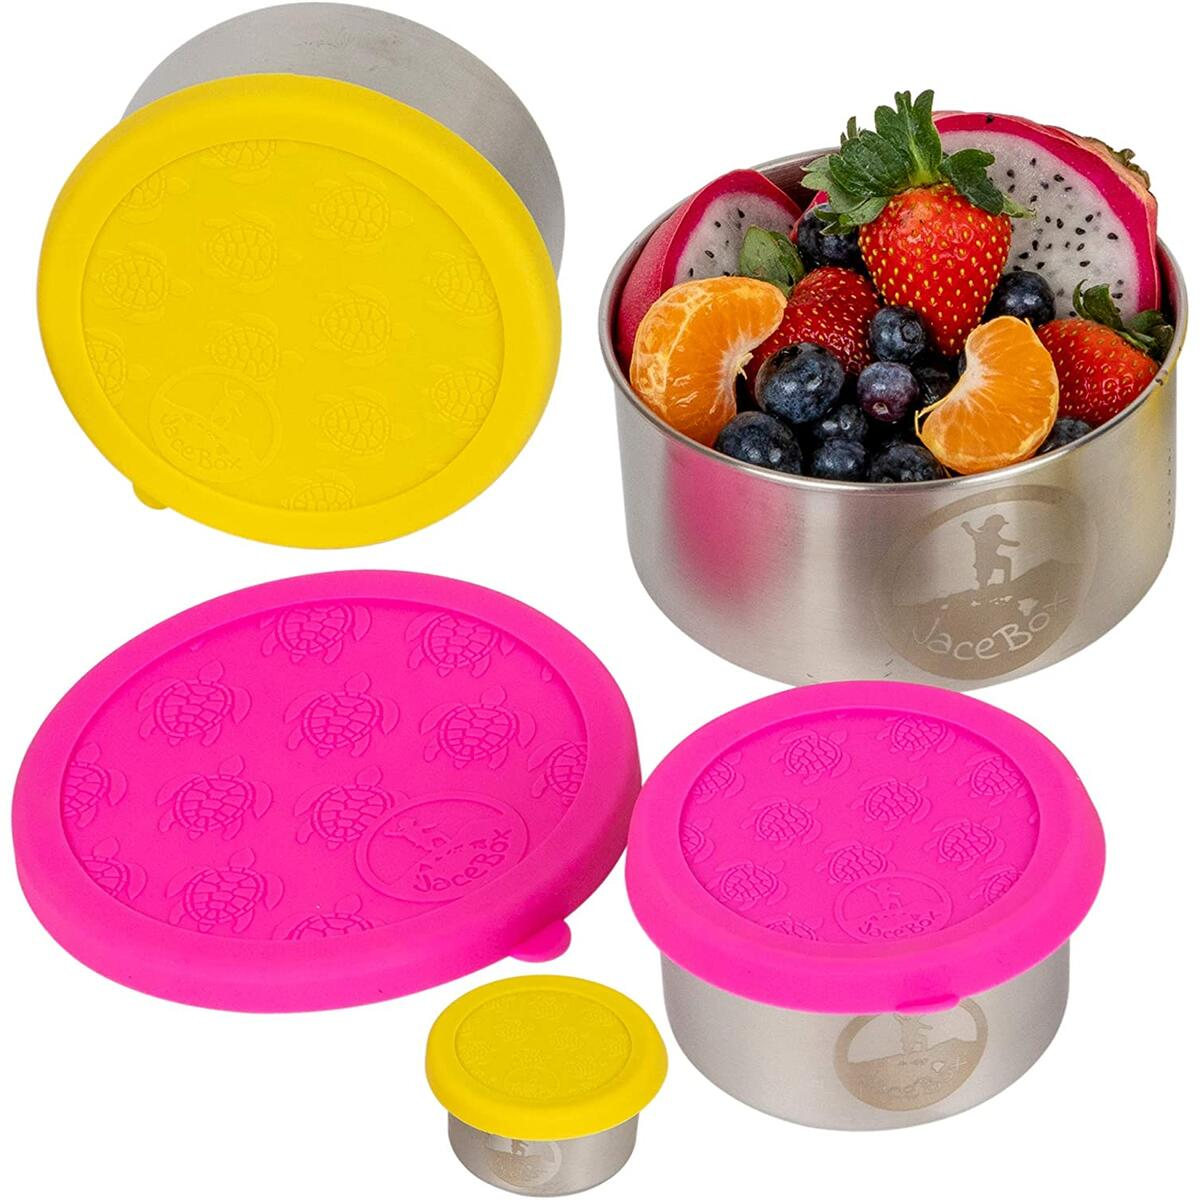 Snack Containers for Kids - Stainless Steel Food Containers Leakproof Plastic FREE Silicone Lid Turtle Design by JaceBox